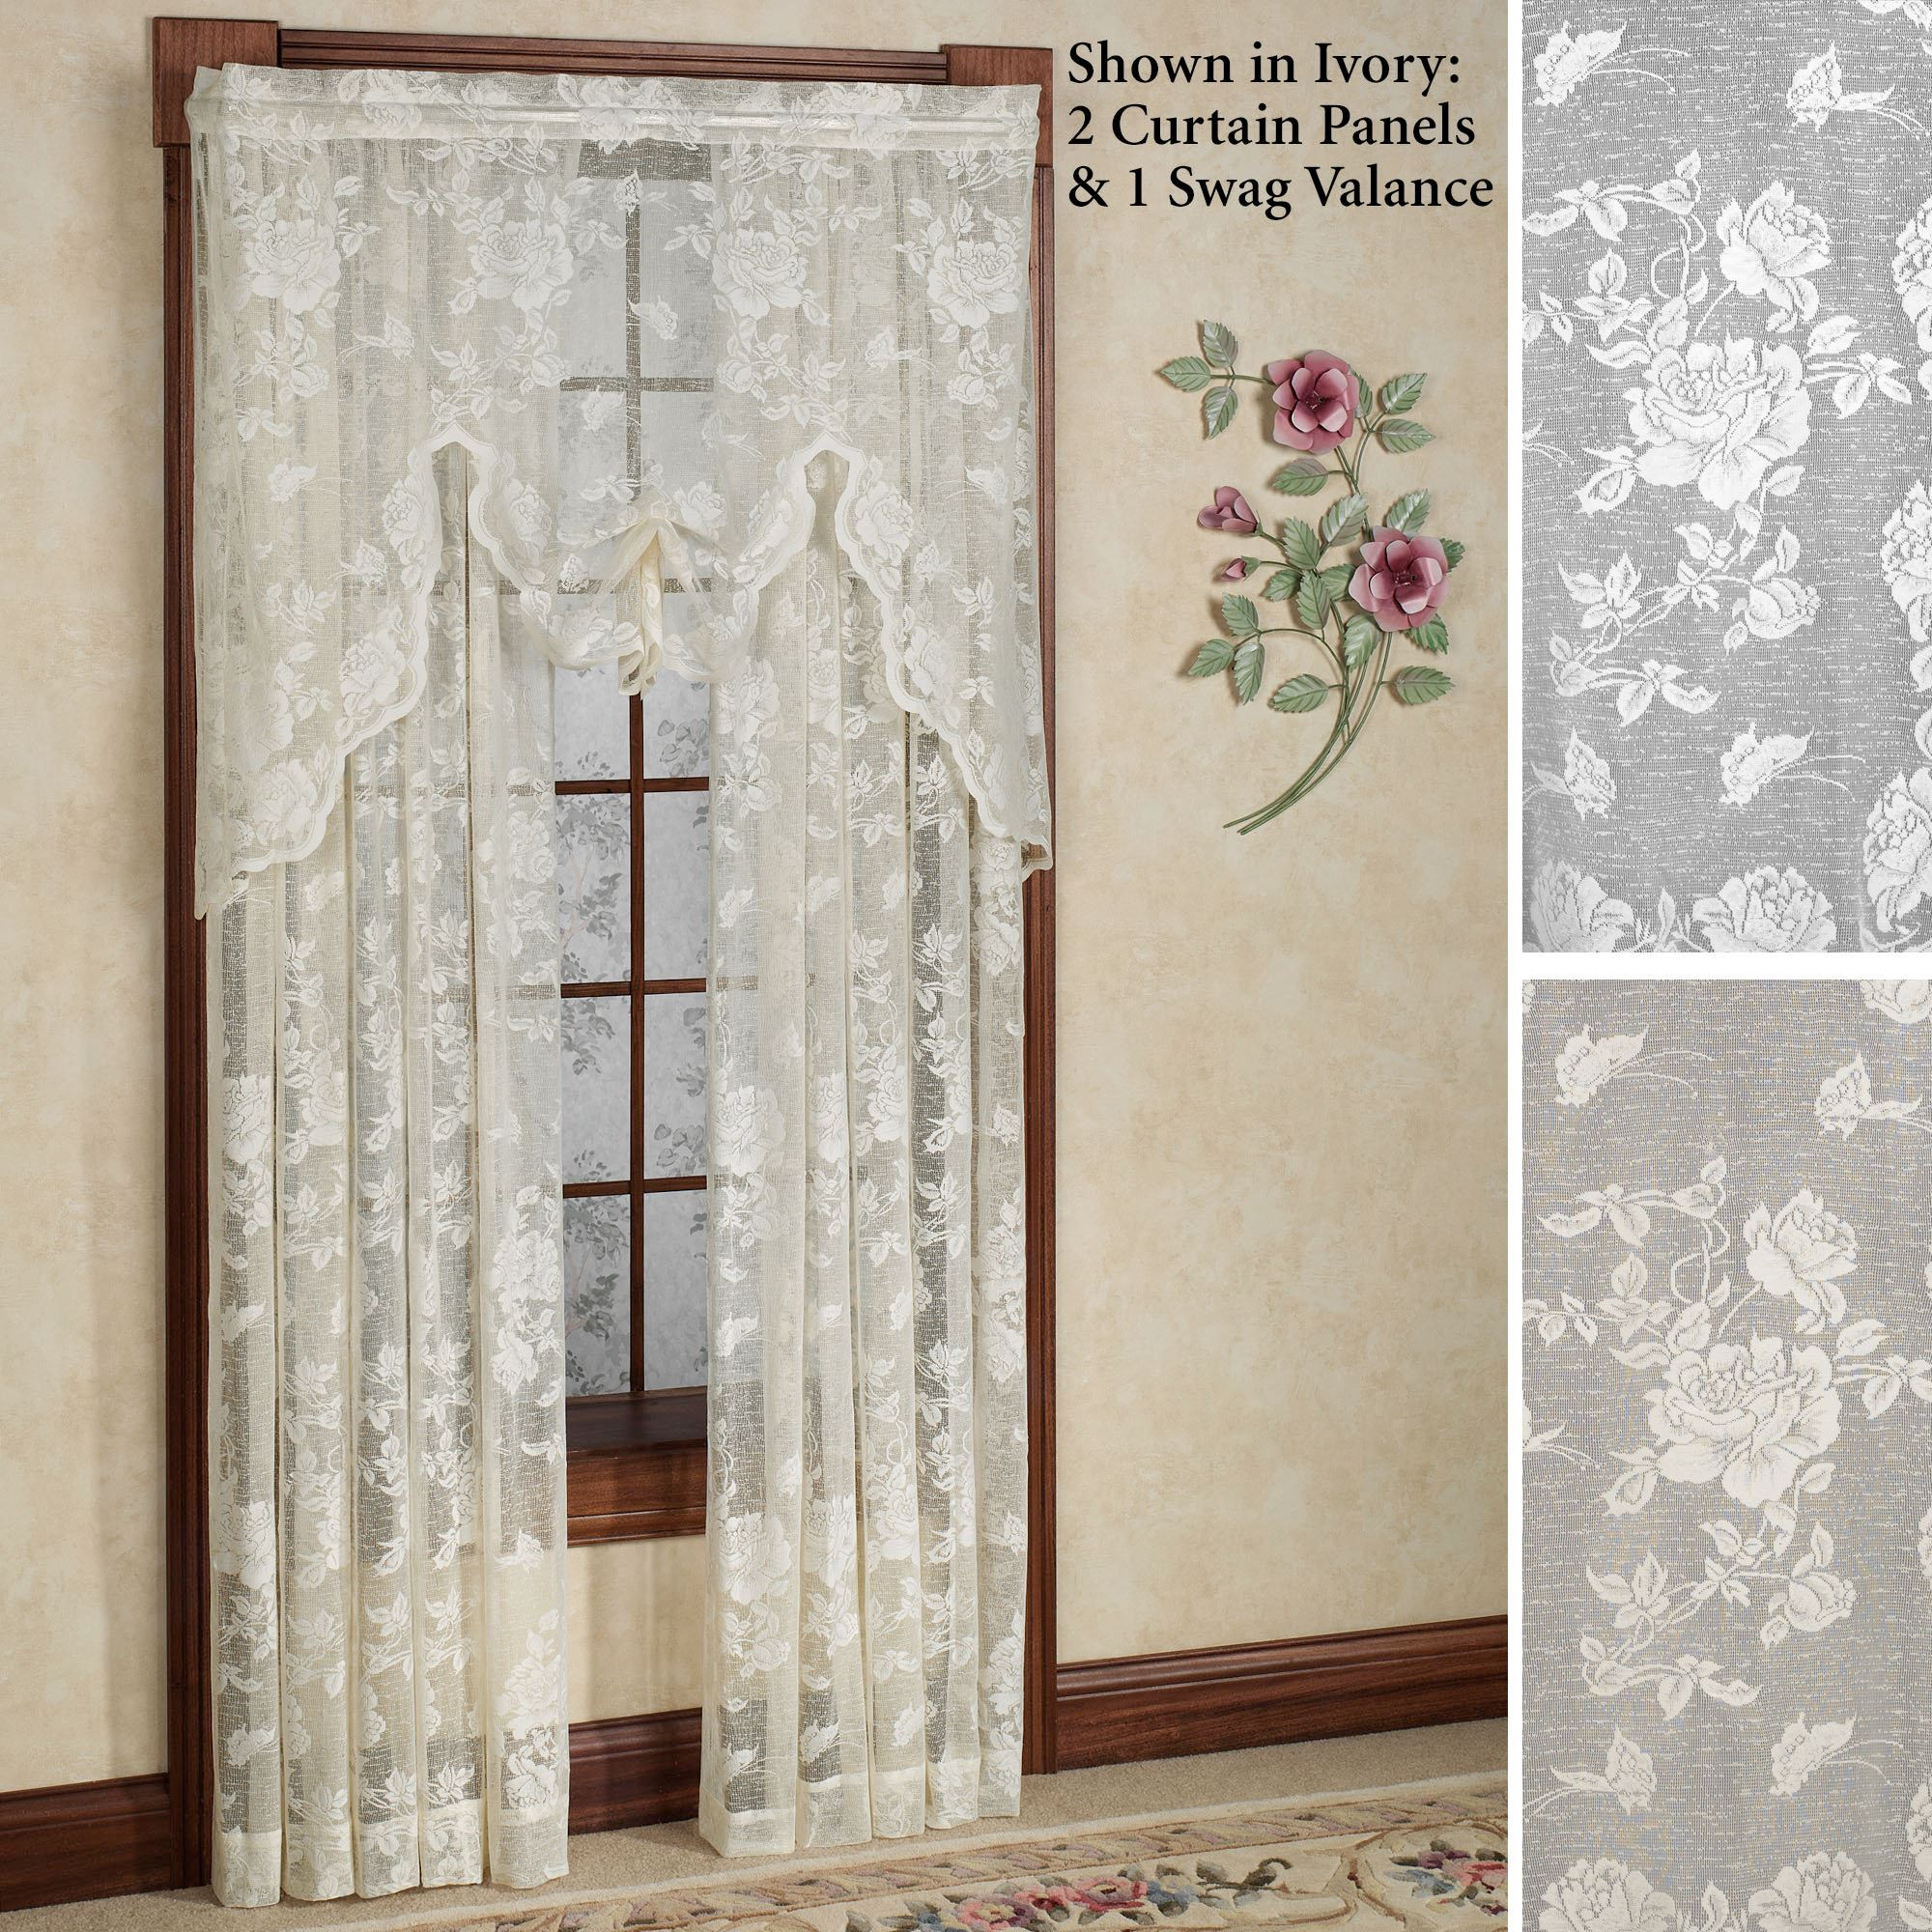 washable kitchen rug particle board cabinets abbey rose floral lace window treatment